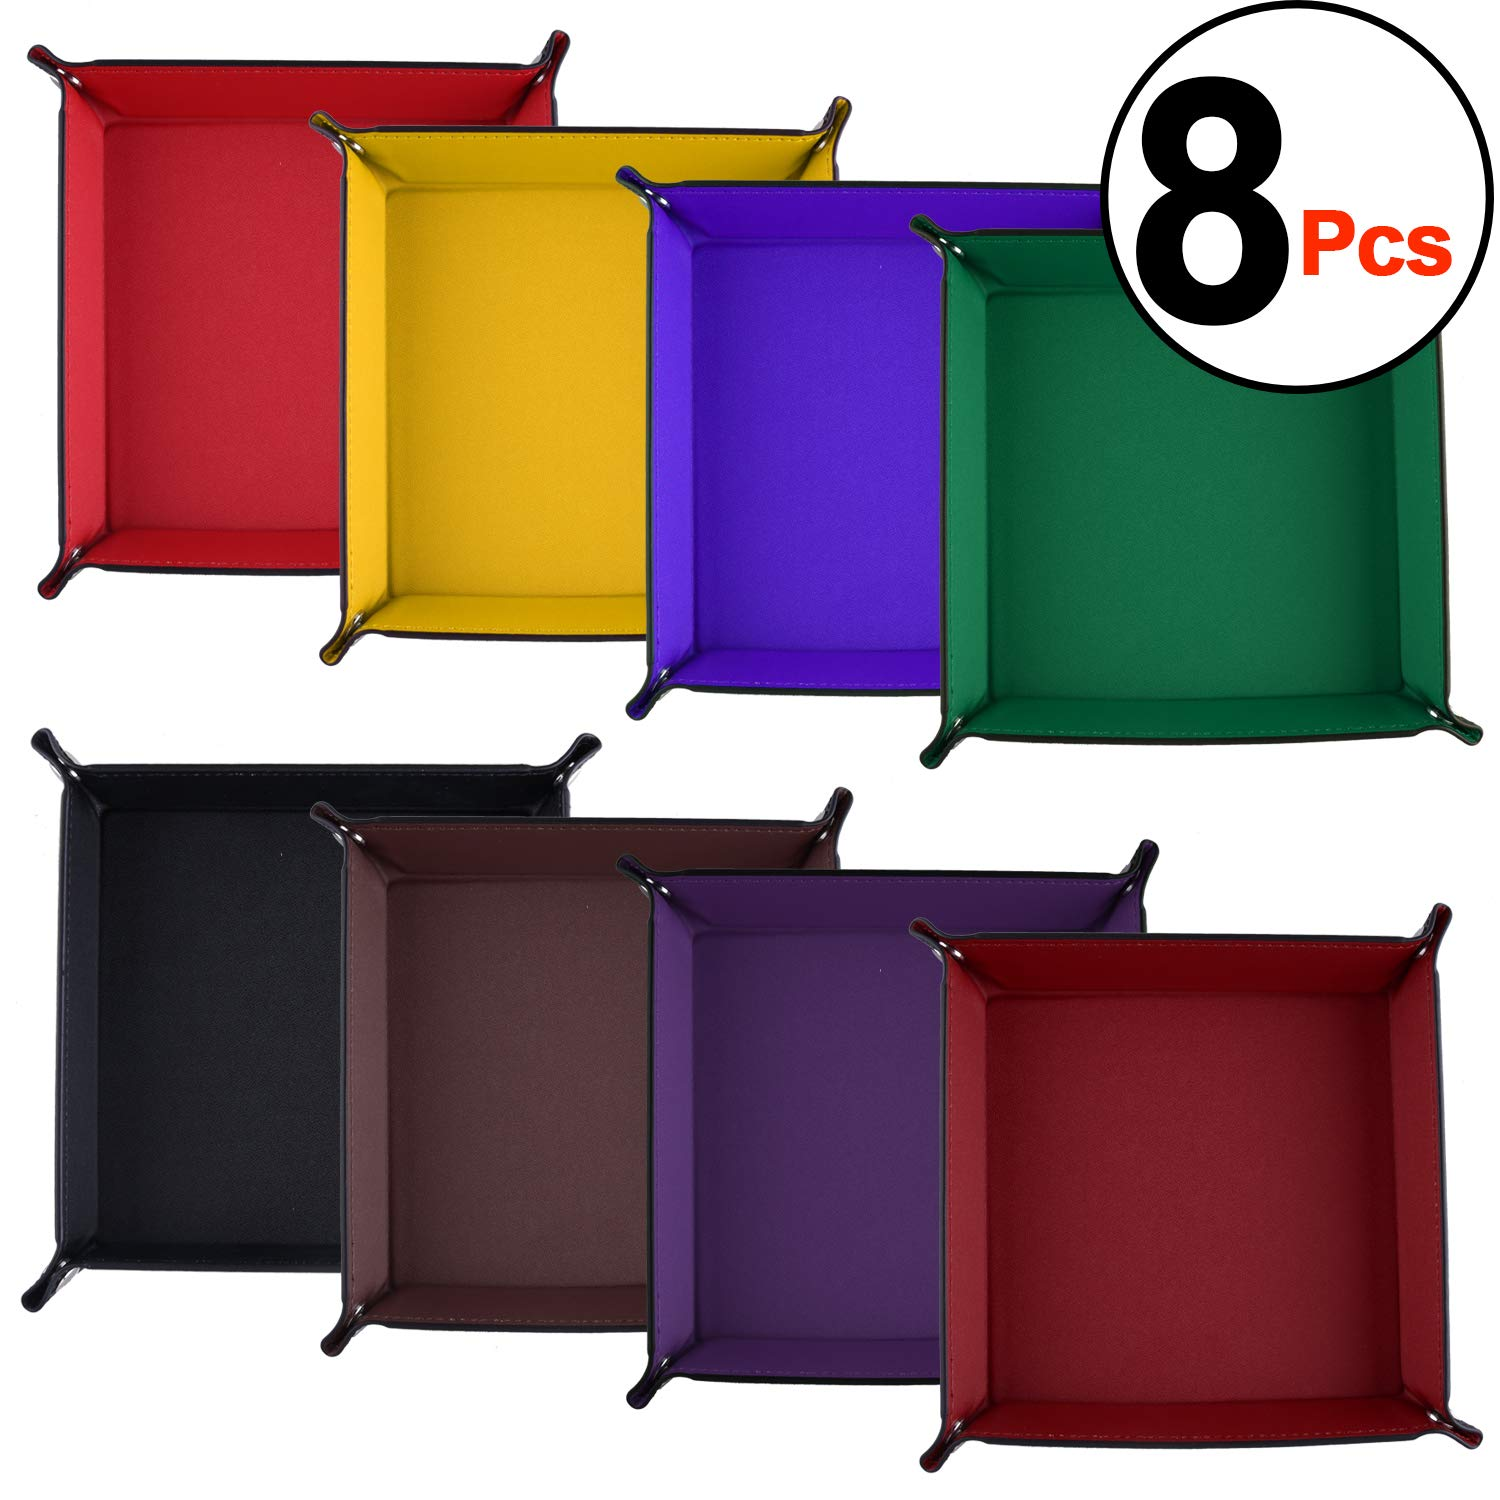 SIQUK 8 Pieces Dice Tray PU Leather Folding Square Dice Holder for Dice Games, 8 Colors by SIQUK